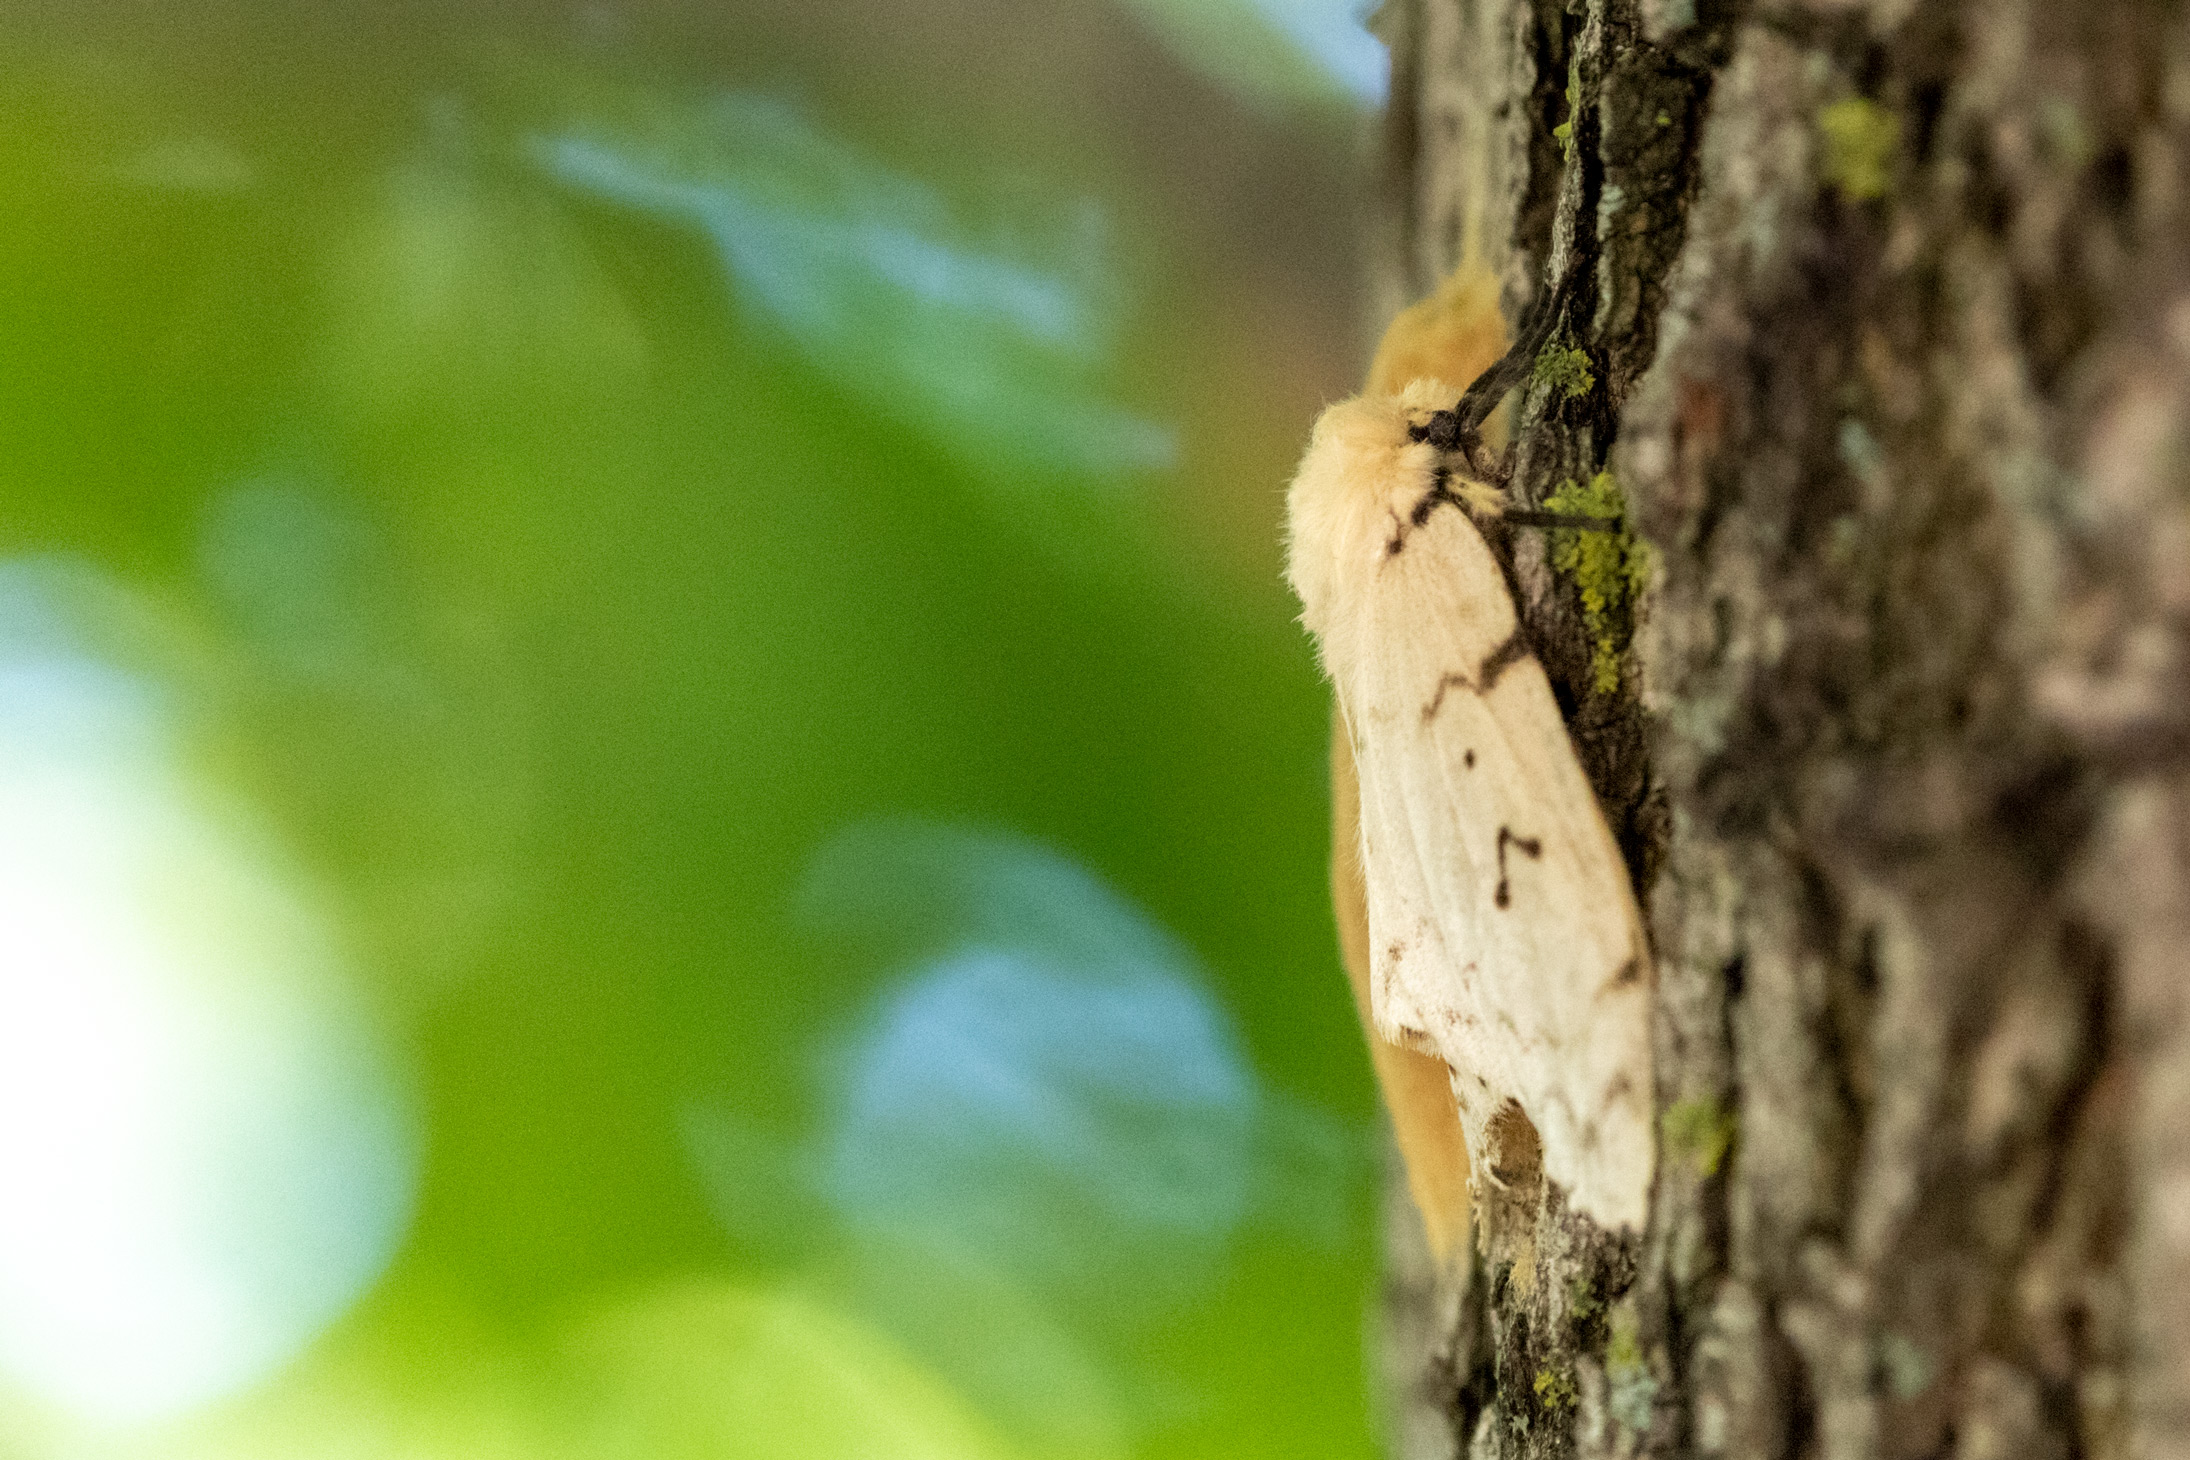 Tan moth with black stripes/spots clinging to tree bark